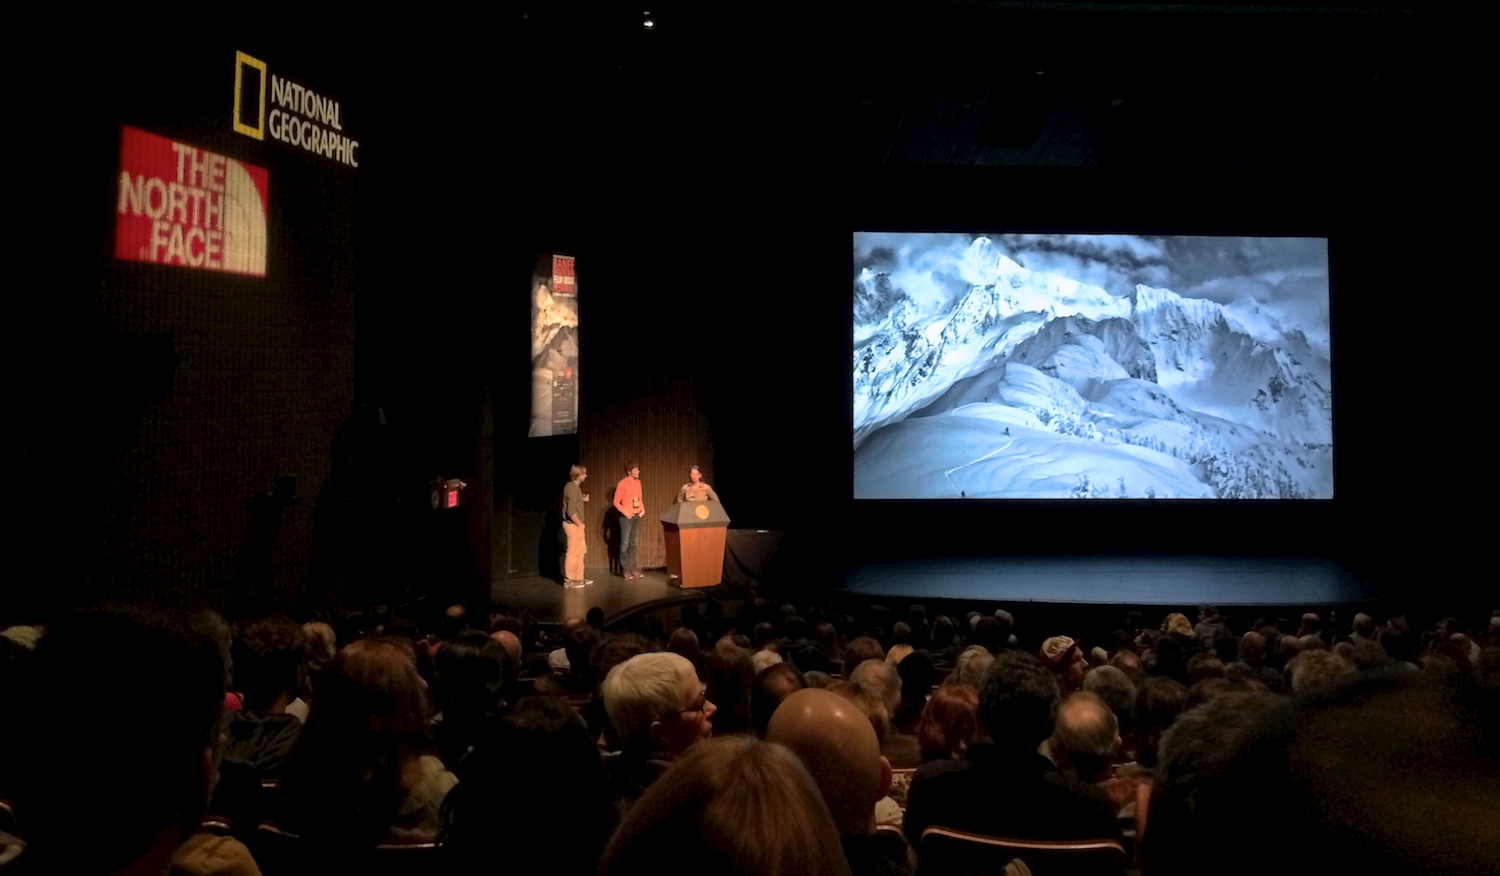 On stage for Q & A after the screening of 'Resounding Silence' at the Banff Mountain Film Festival, November 2013